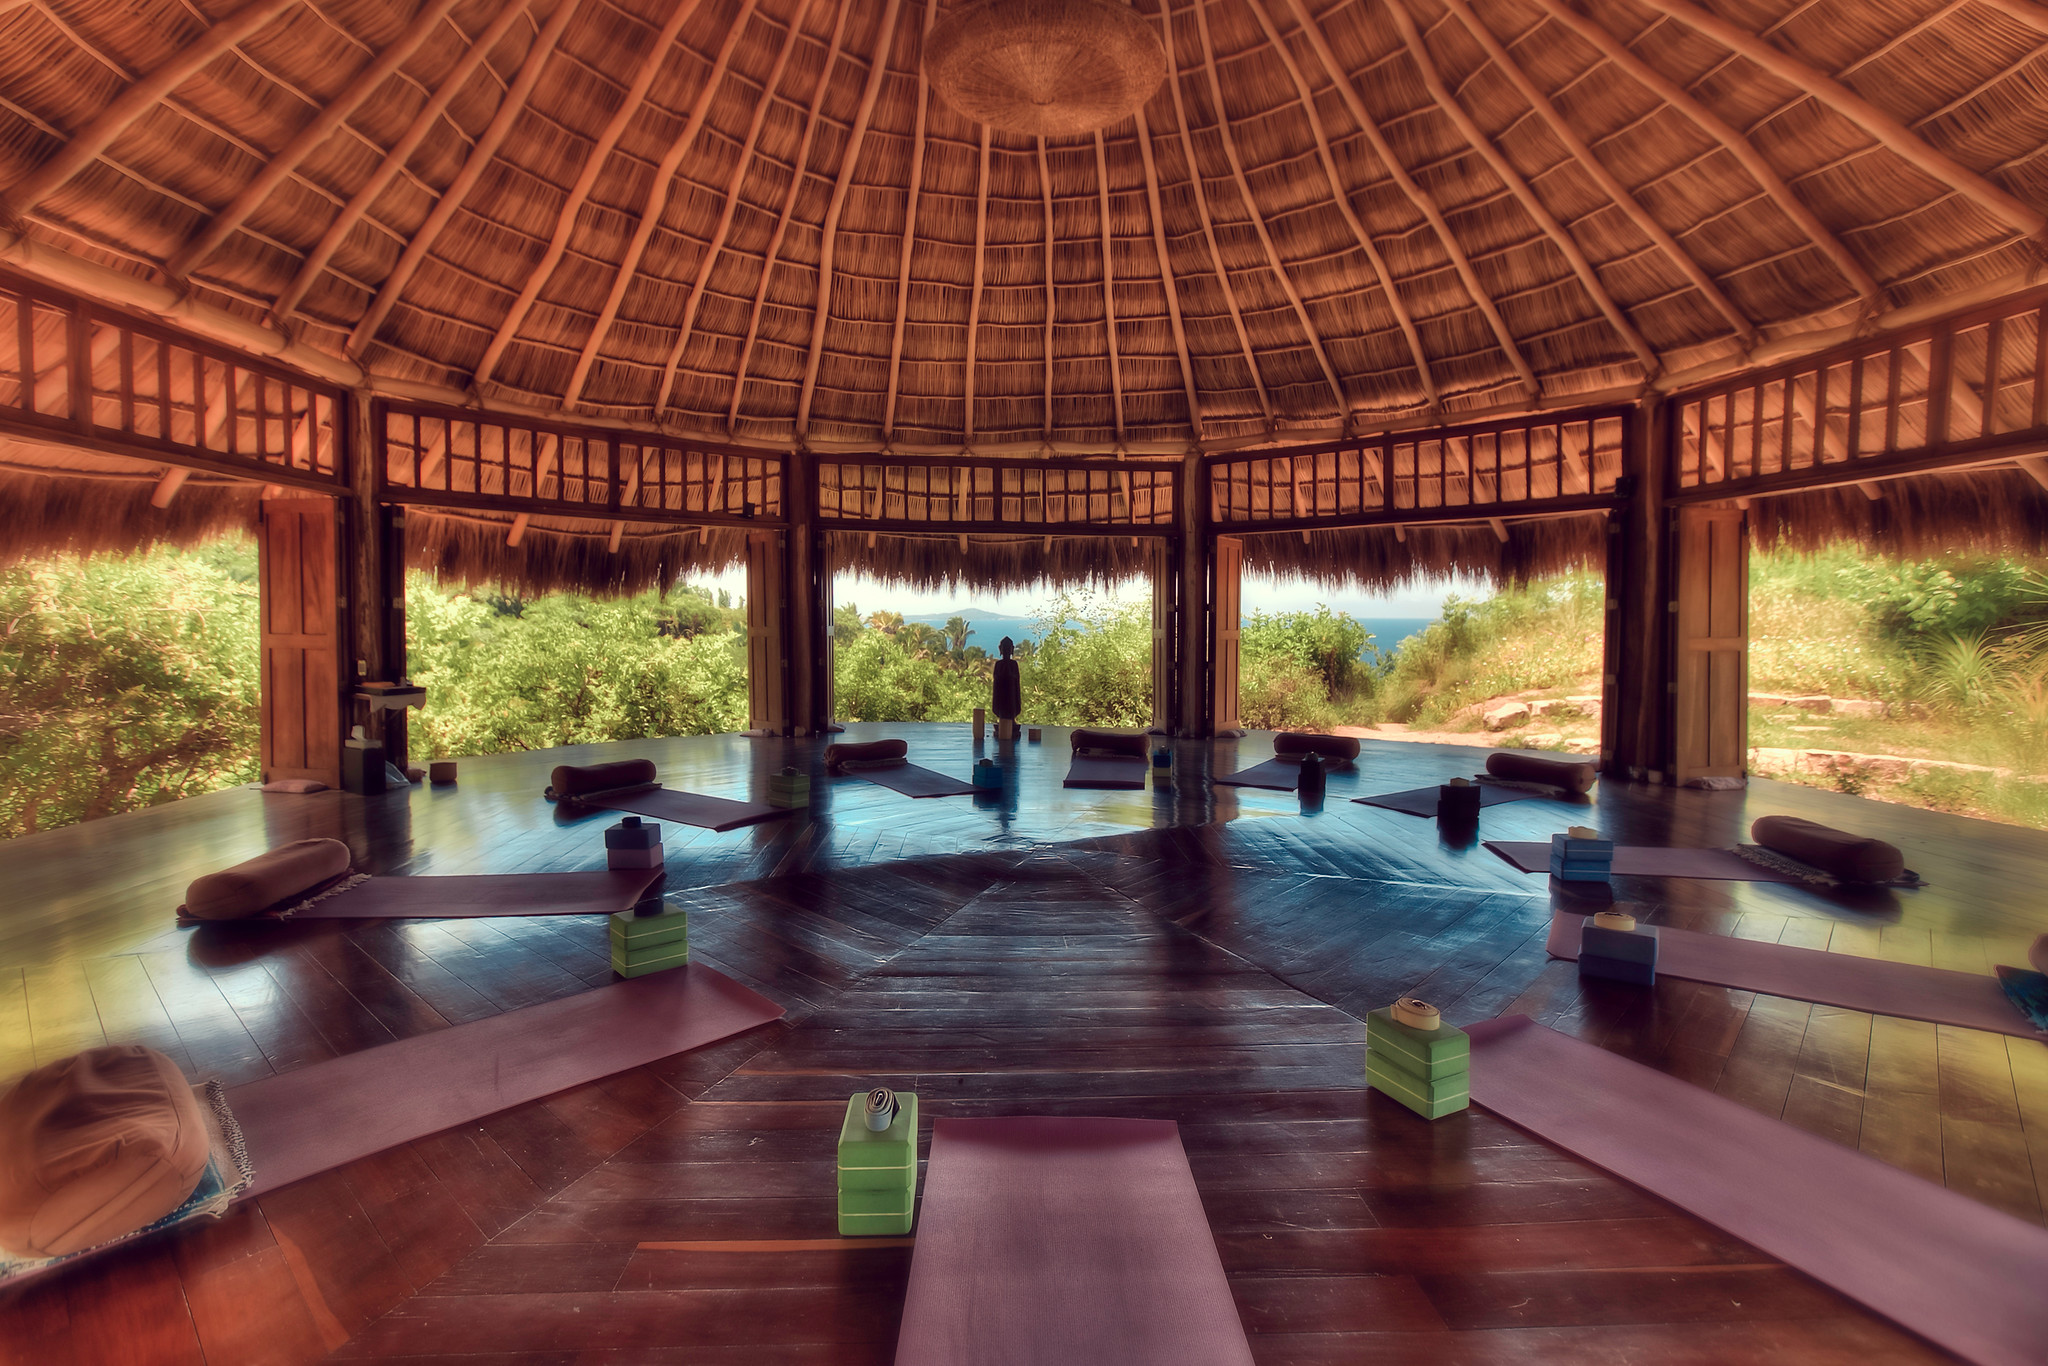 Yoga mats and a view on a MedTreks Yoga Retreat